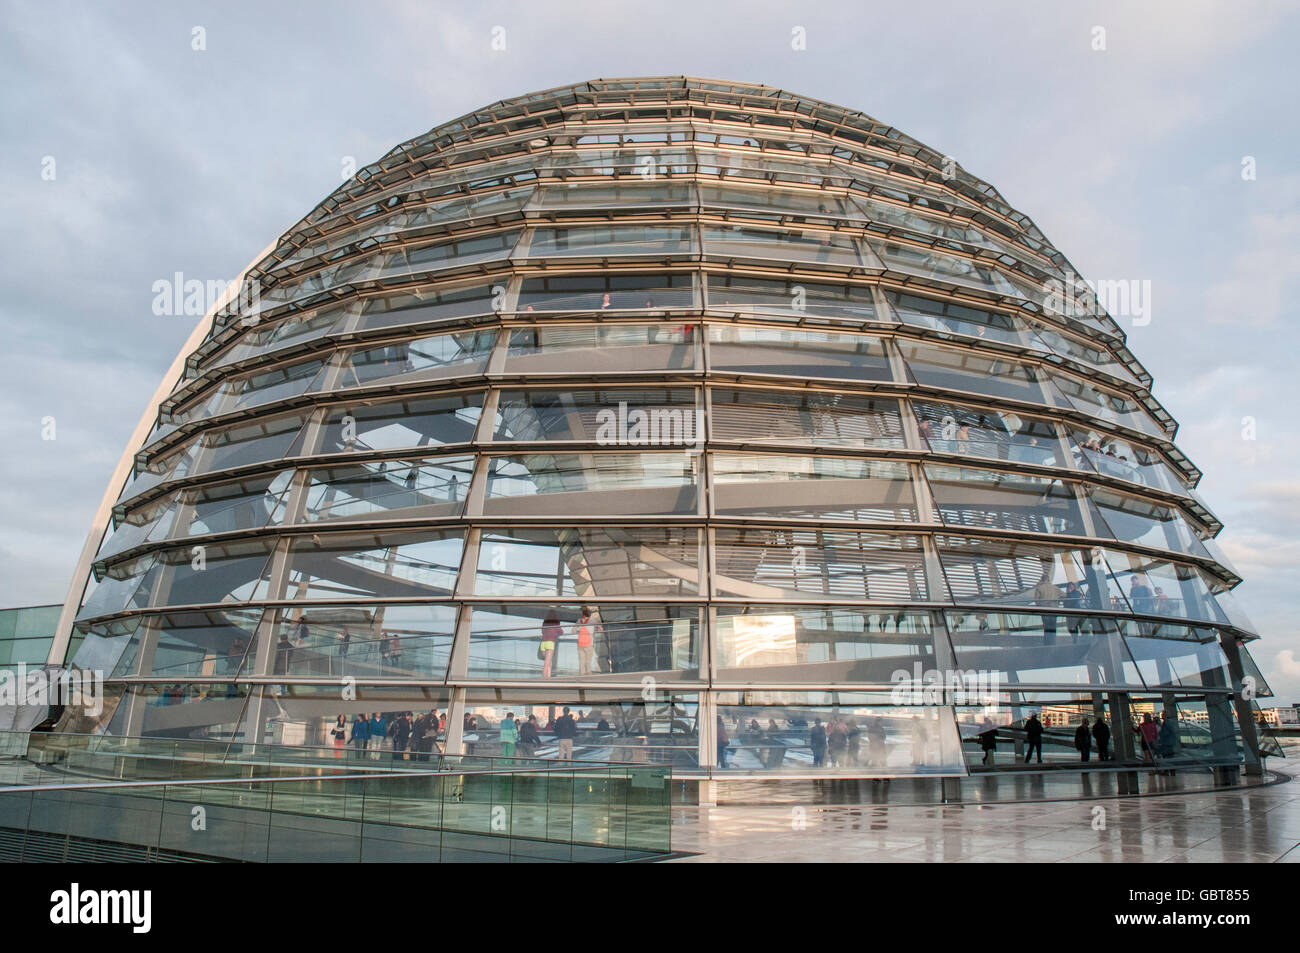 Norman Foster's Bundestag (Parliament building) Dome, Berlin - Stock Image